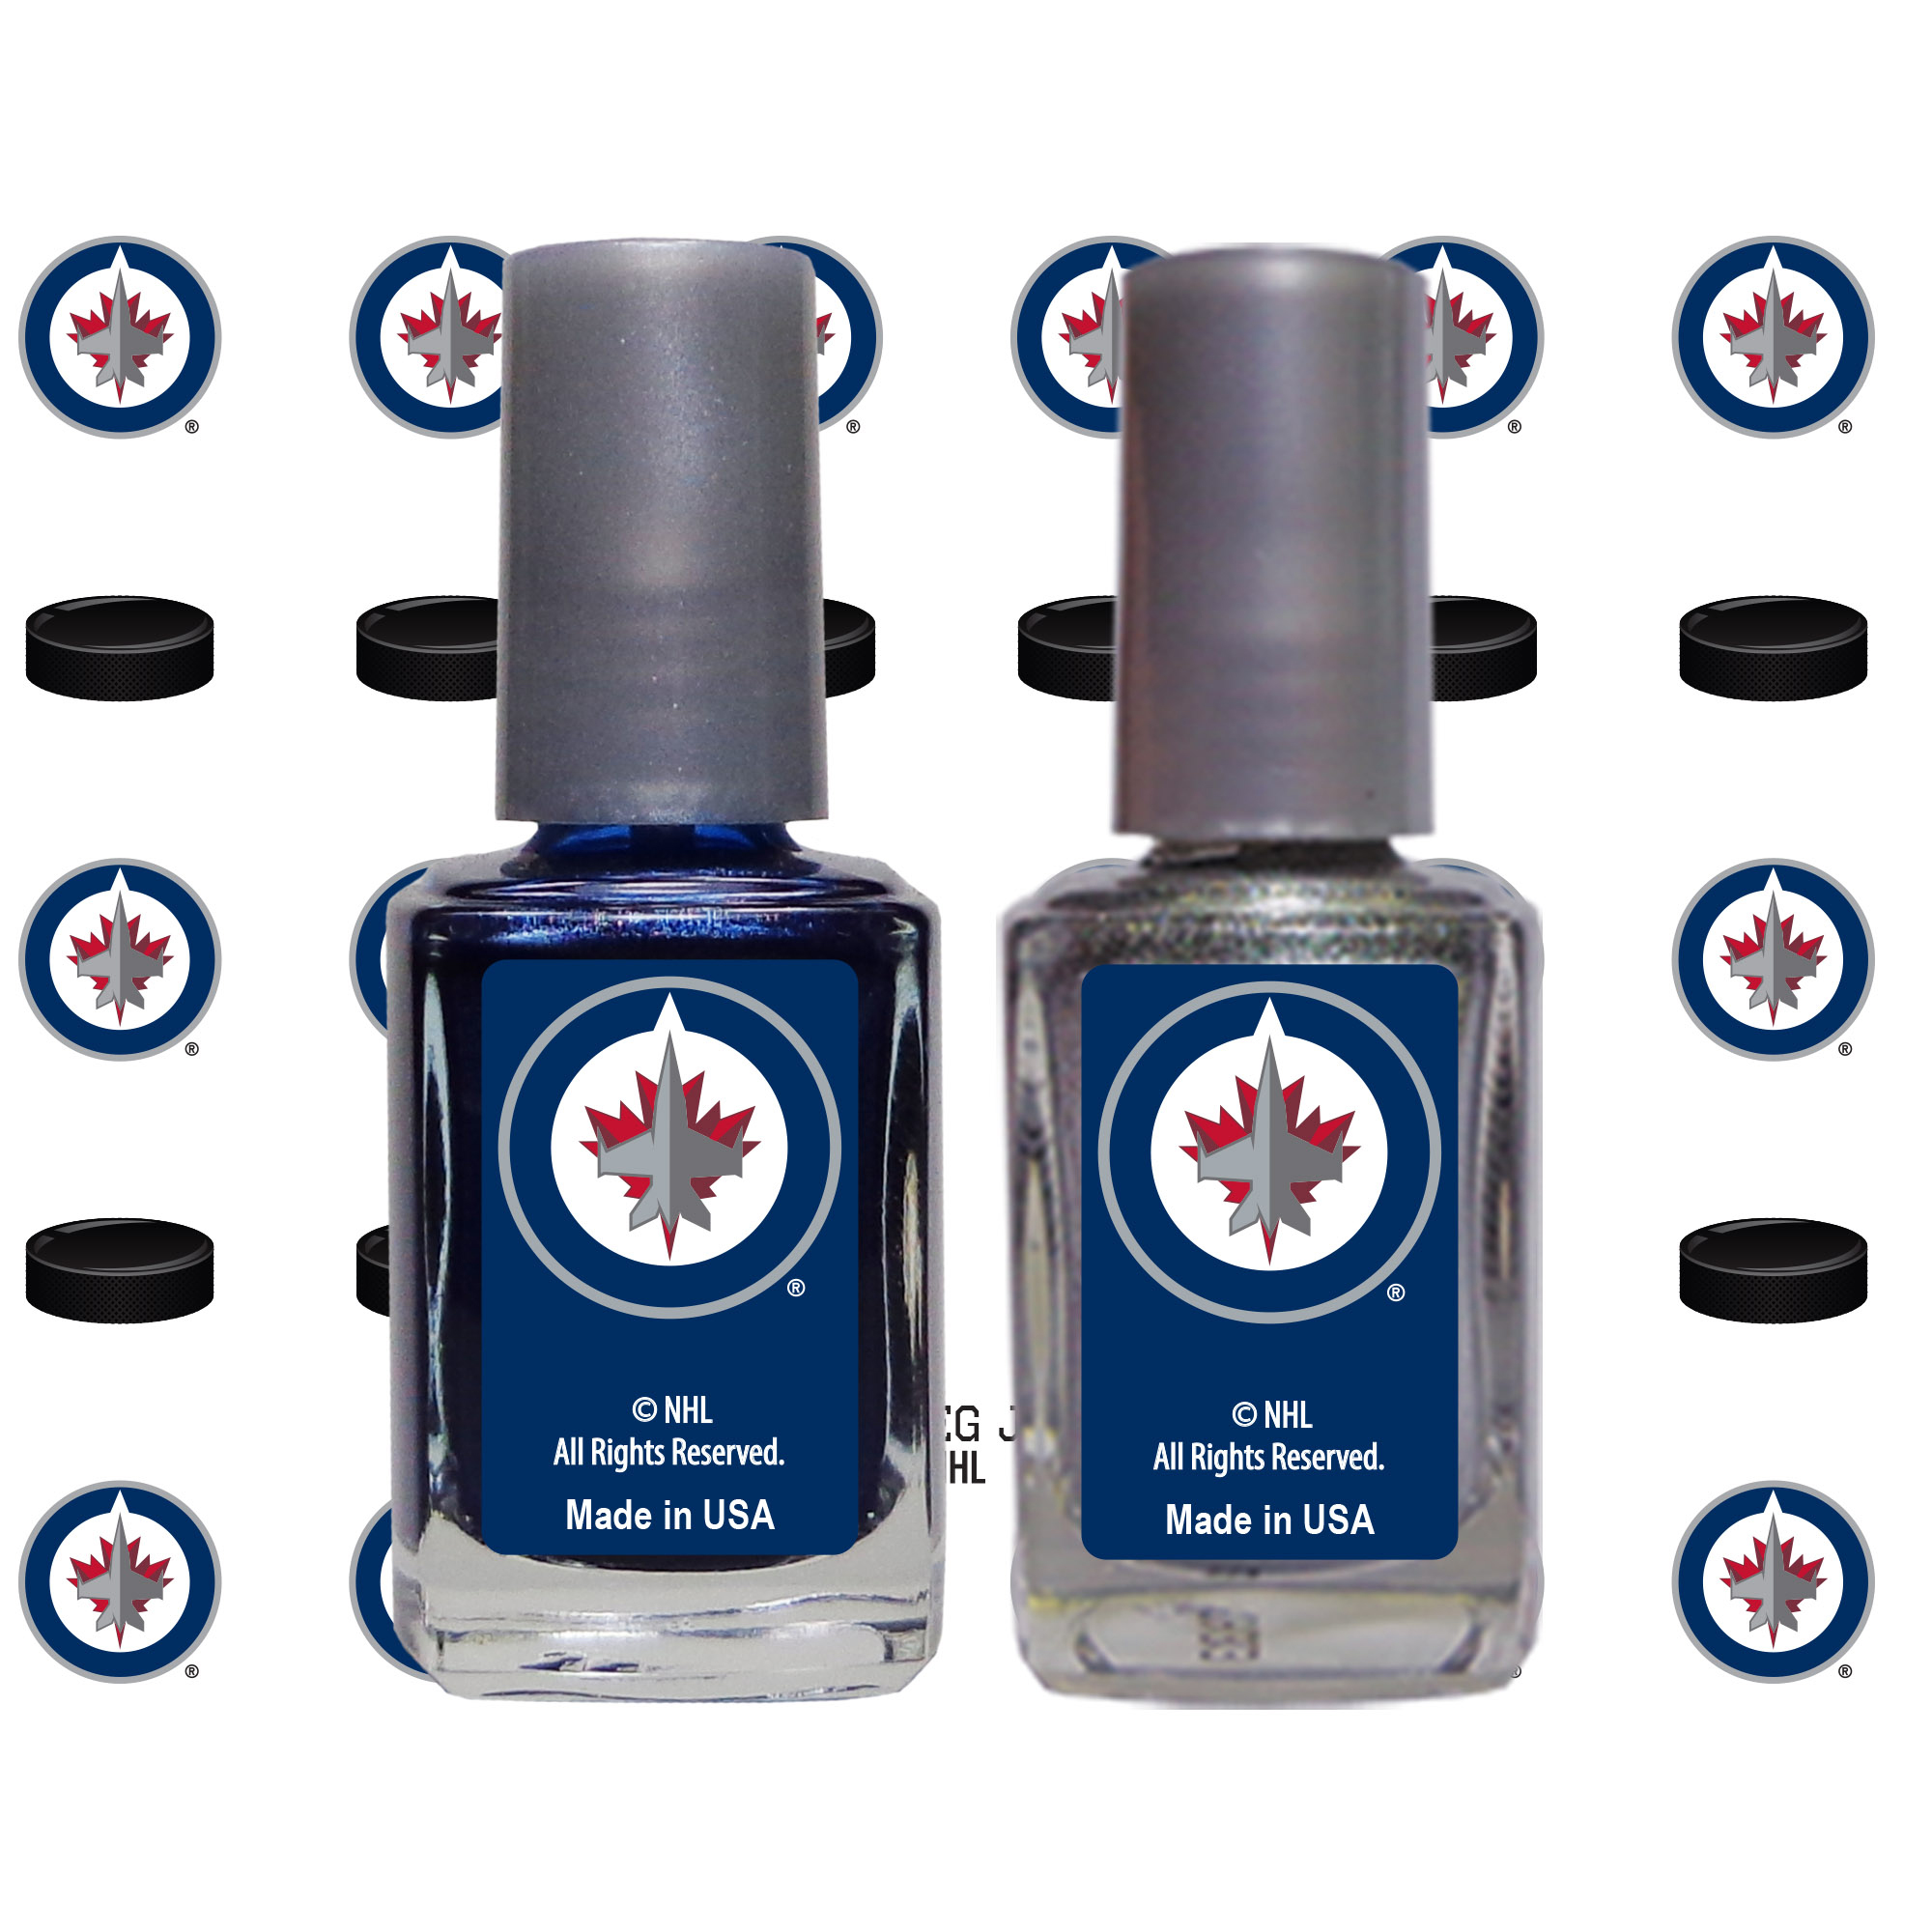 Winnipeg Jets 2-Pack Nail Polish with Nail Decal - No Size